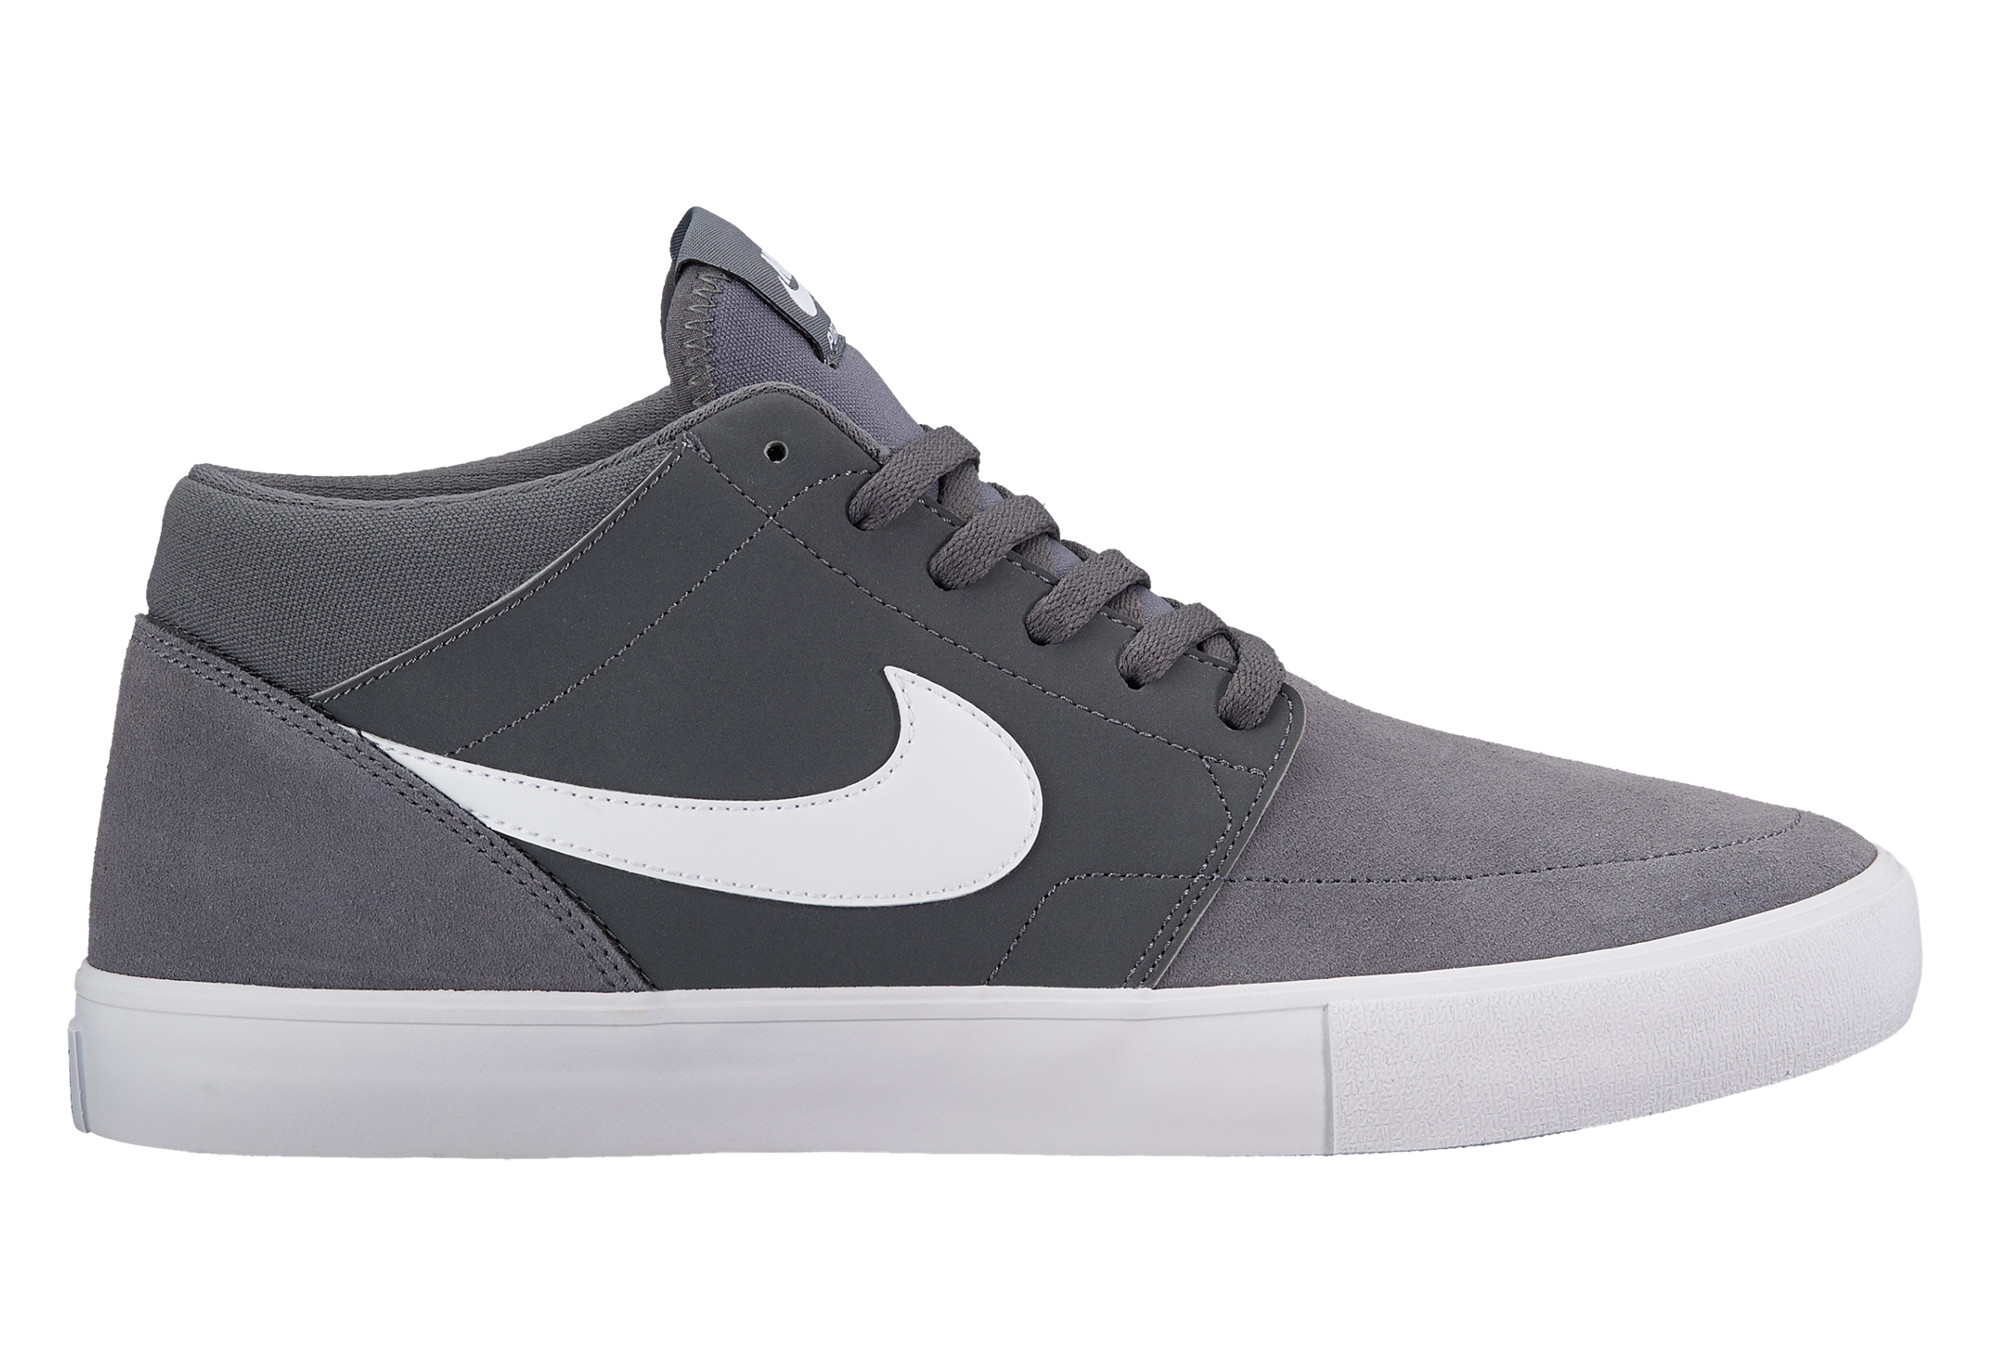 nike sb solarsoft portmore ii mid shoes grey white. Black Bedroom Furniture Sets. Home Design Ideas